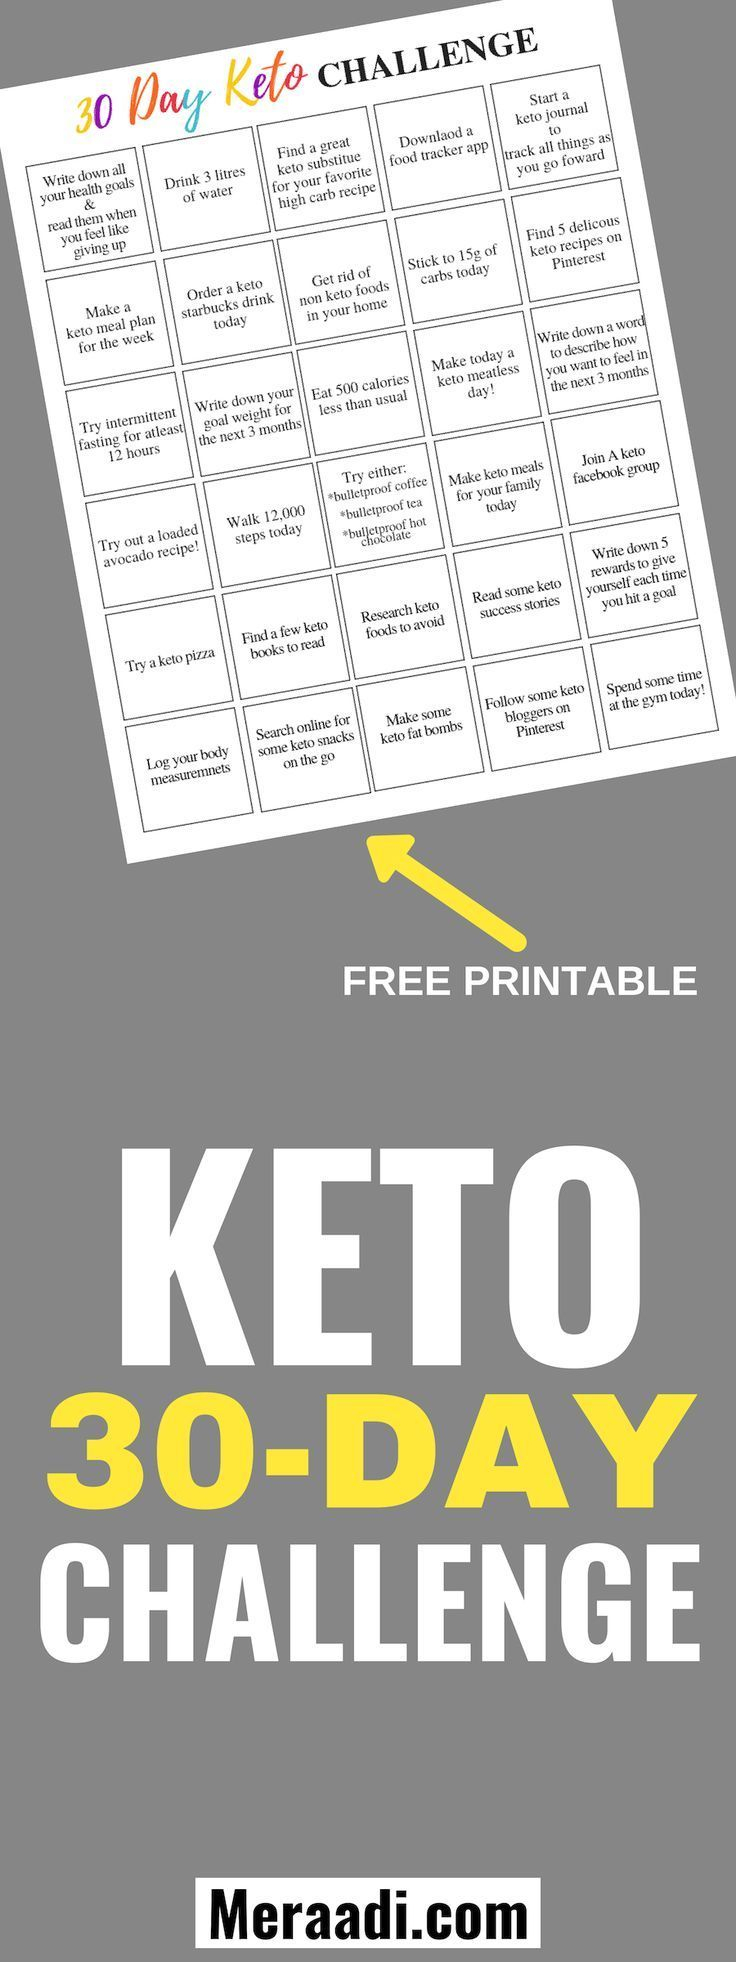 This Keto 30 Day Challenge Is The Best! I'M So Glad I